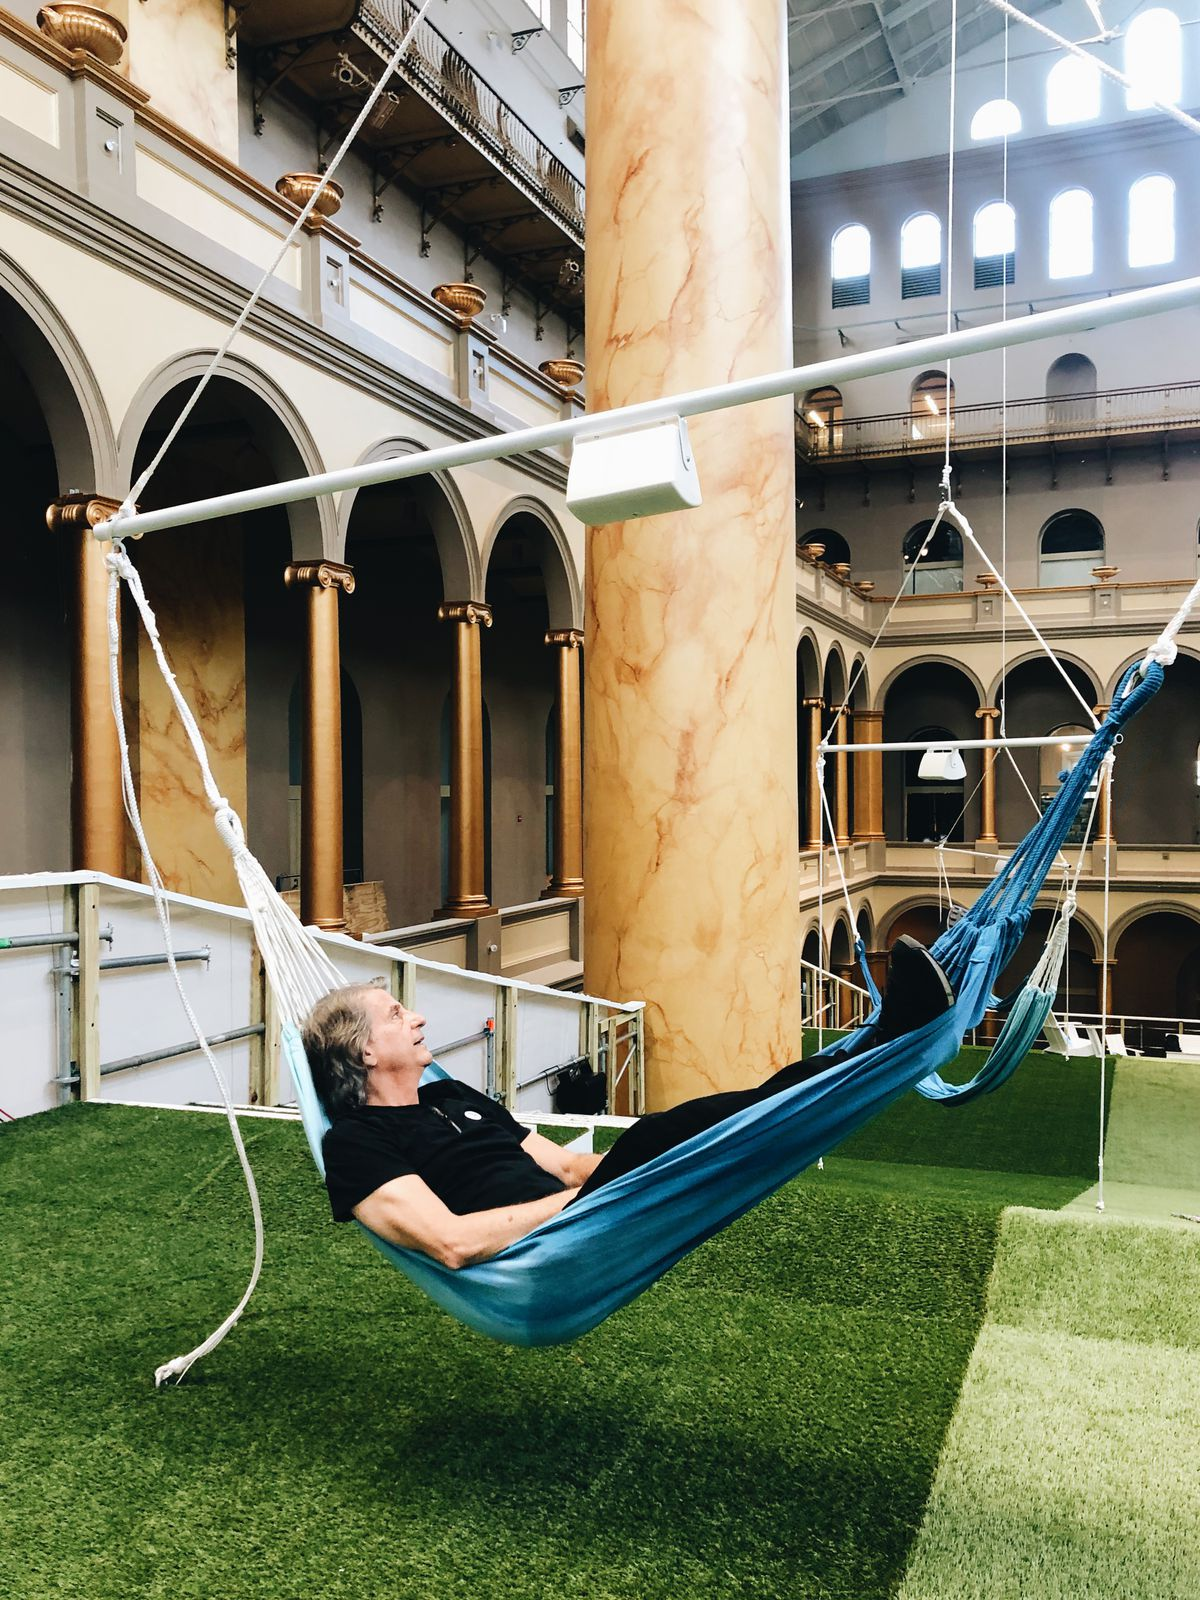 A man lies back on a blue hammock in a courtyard. He is looking at the building's arches and columns.